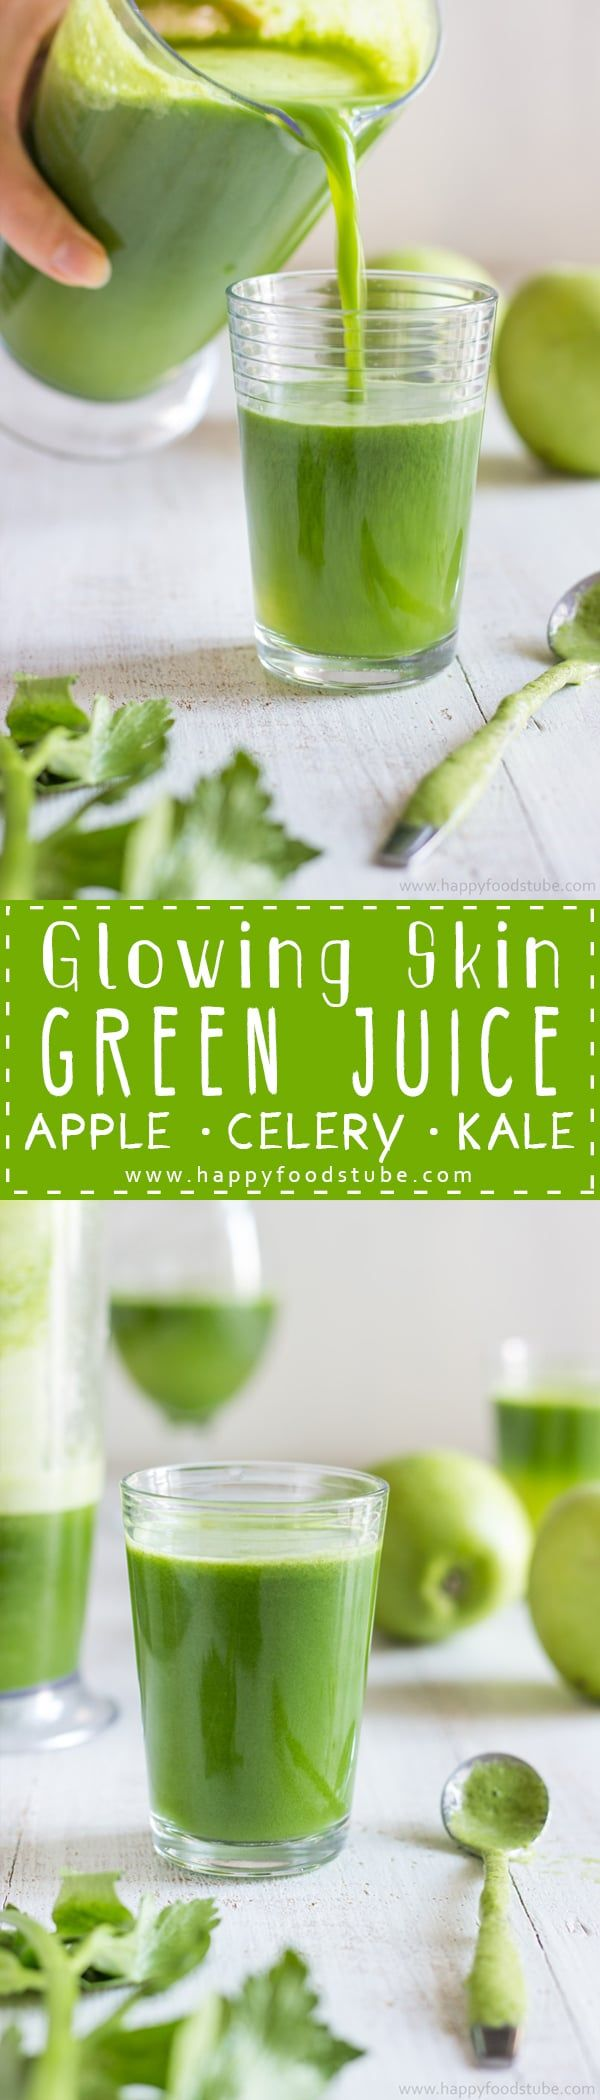 This Green Juice recipe is an easy way to give your skin the glow…